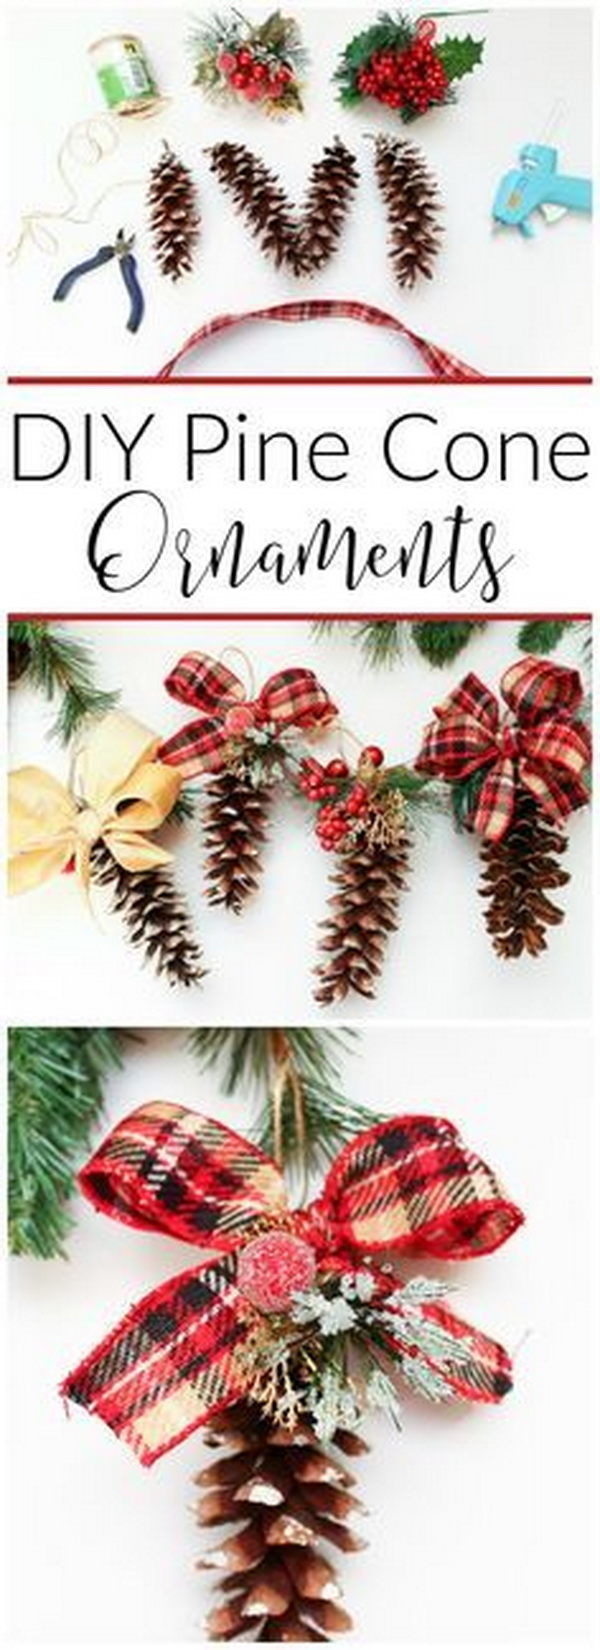 DIY Pine Cone Ornaments.